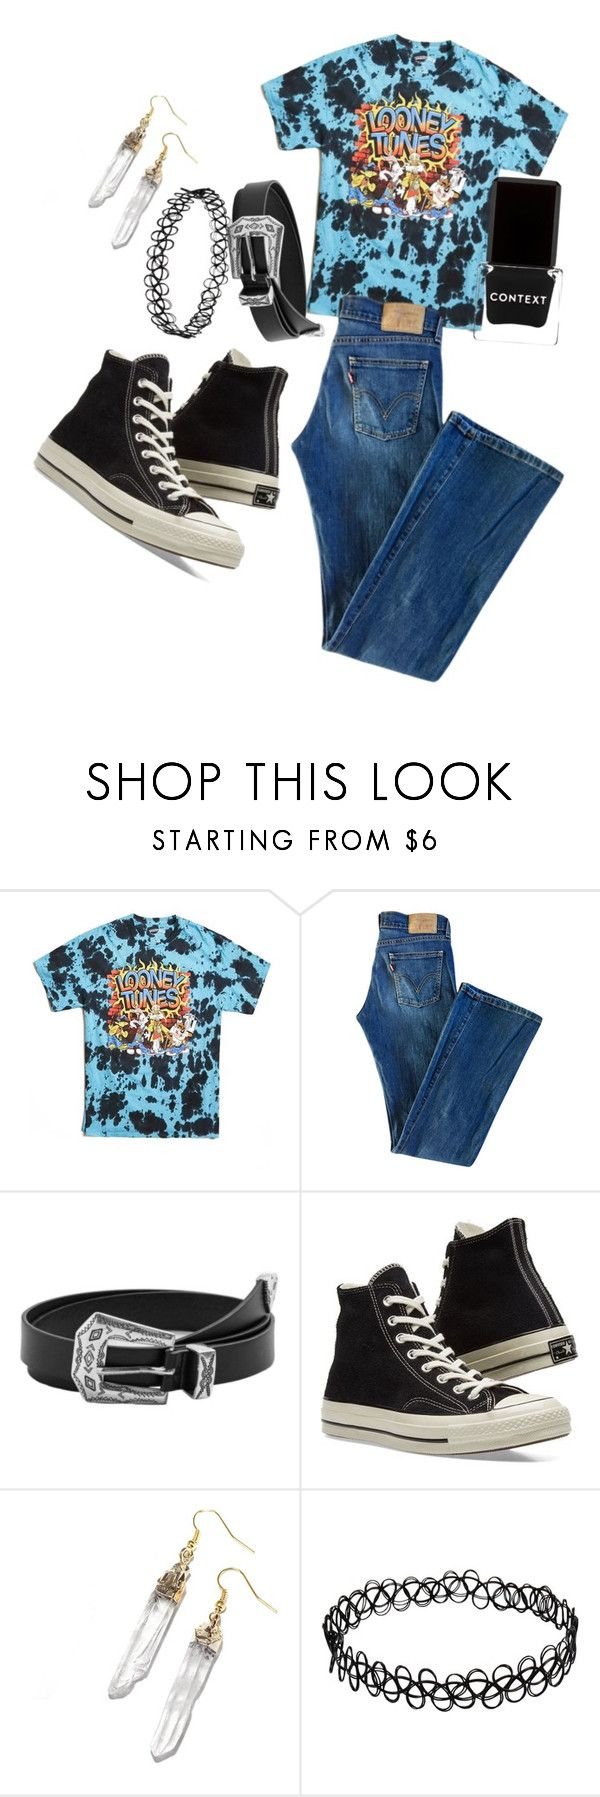 """Rad Looney Tunes Outfit"" by diamondsdokill ❤ liked on Polyvore featuring 21 Men, Levi's, MANGO, Converse and Context"